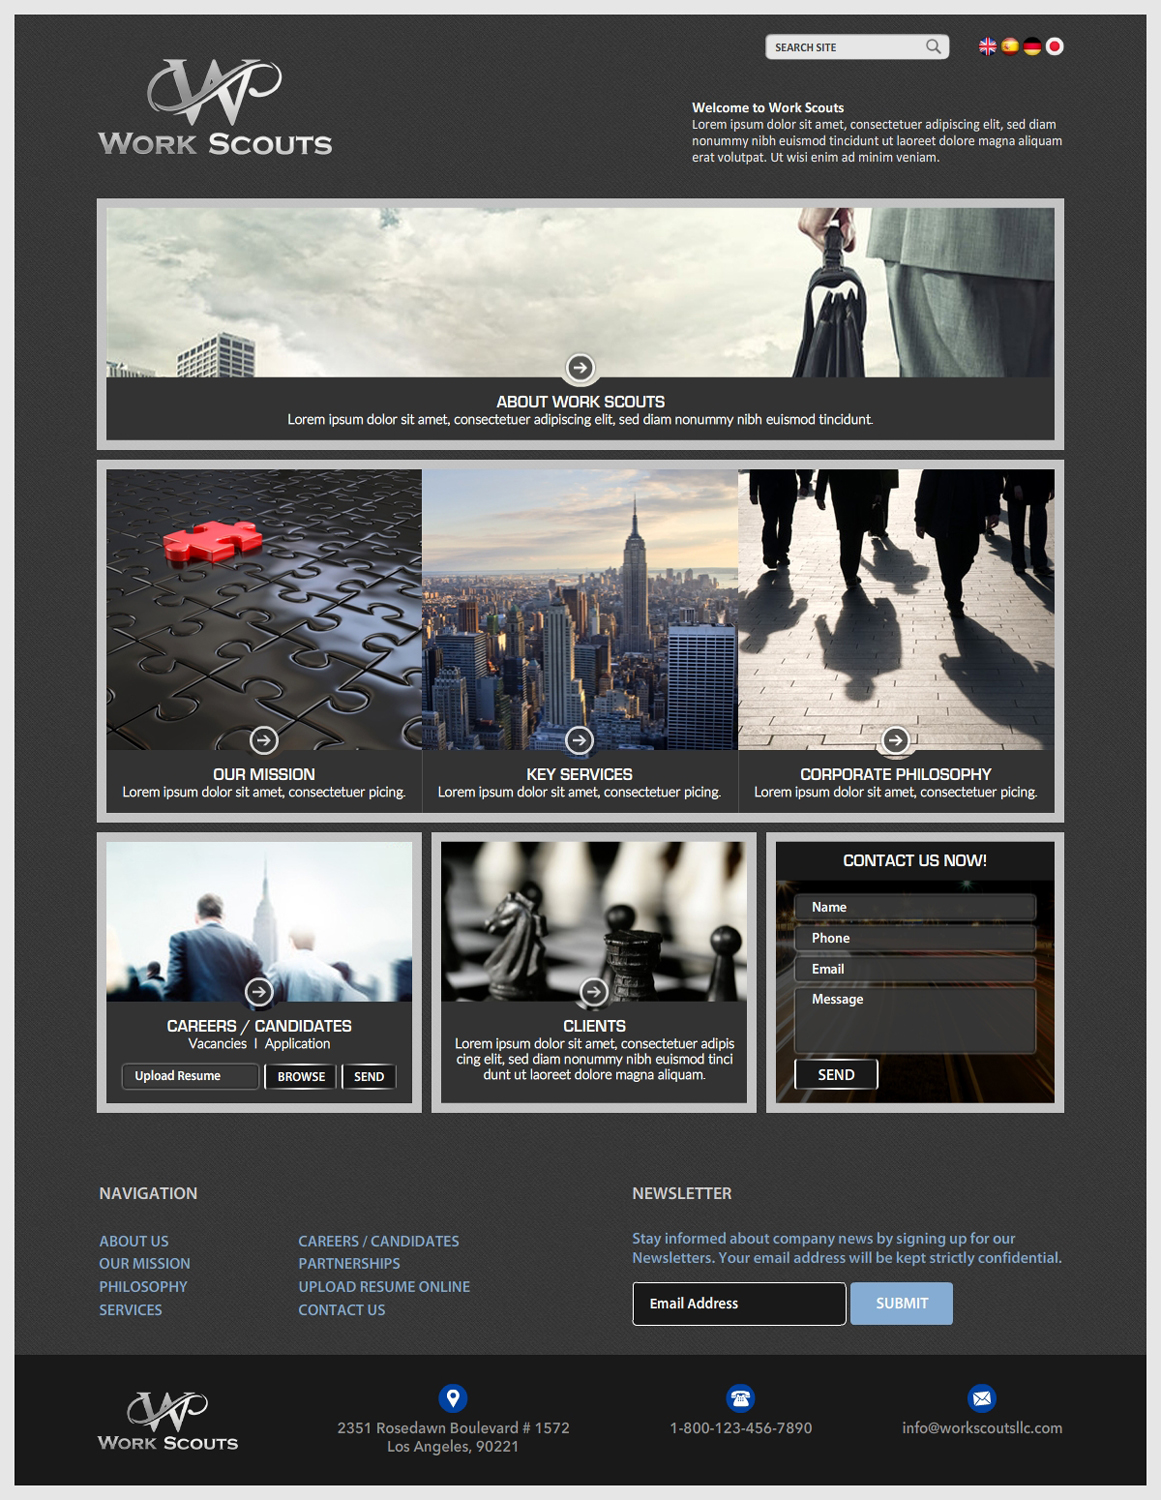 Conservative, Serious, Employment Agency Web Design for Work Scouts